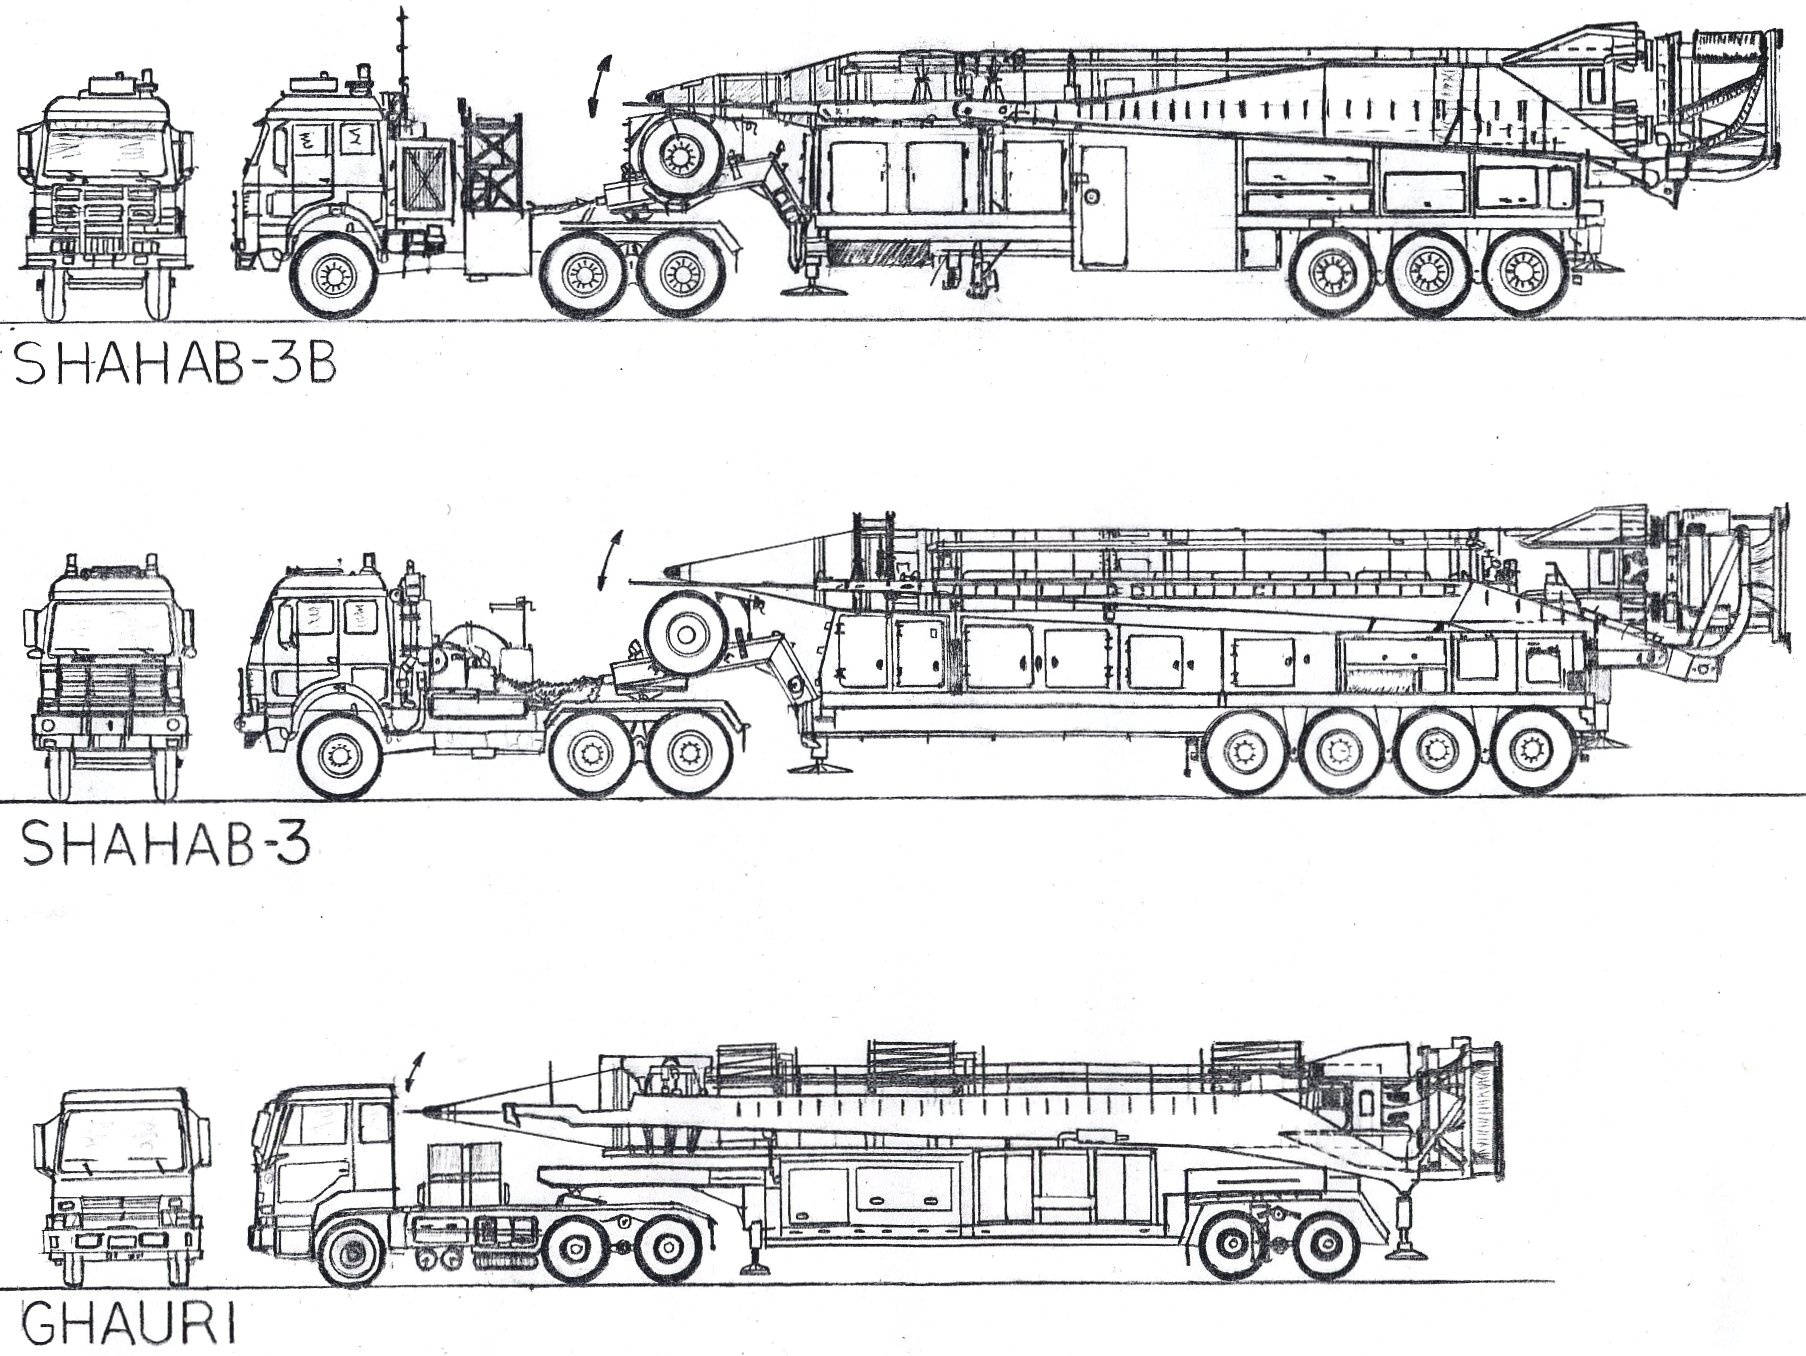 http://www.globalsecurity.org/wmd/world/iran/images/shahab-3-launchers.jpg